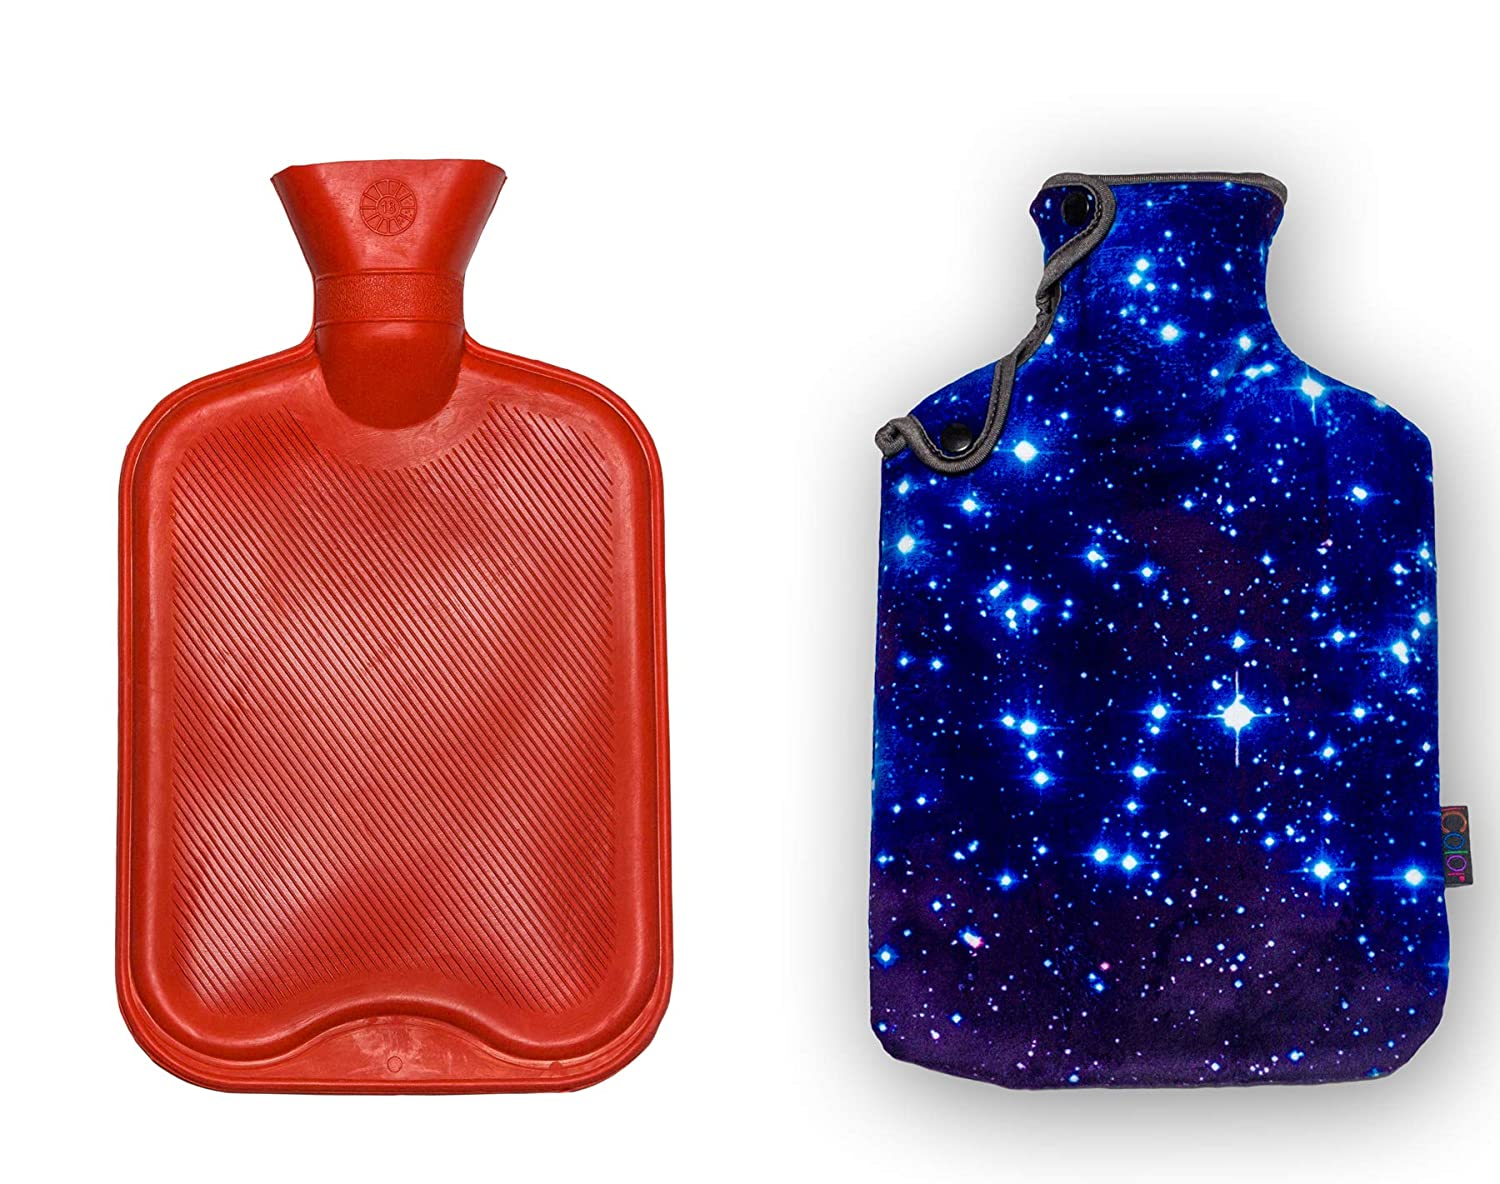 iColor Rubber Hot Water Bottle 2 Liter Classic Red Hot Water Bag with Soft Warm Flannel Cover Set (Blue Sky)